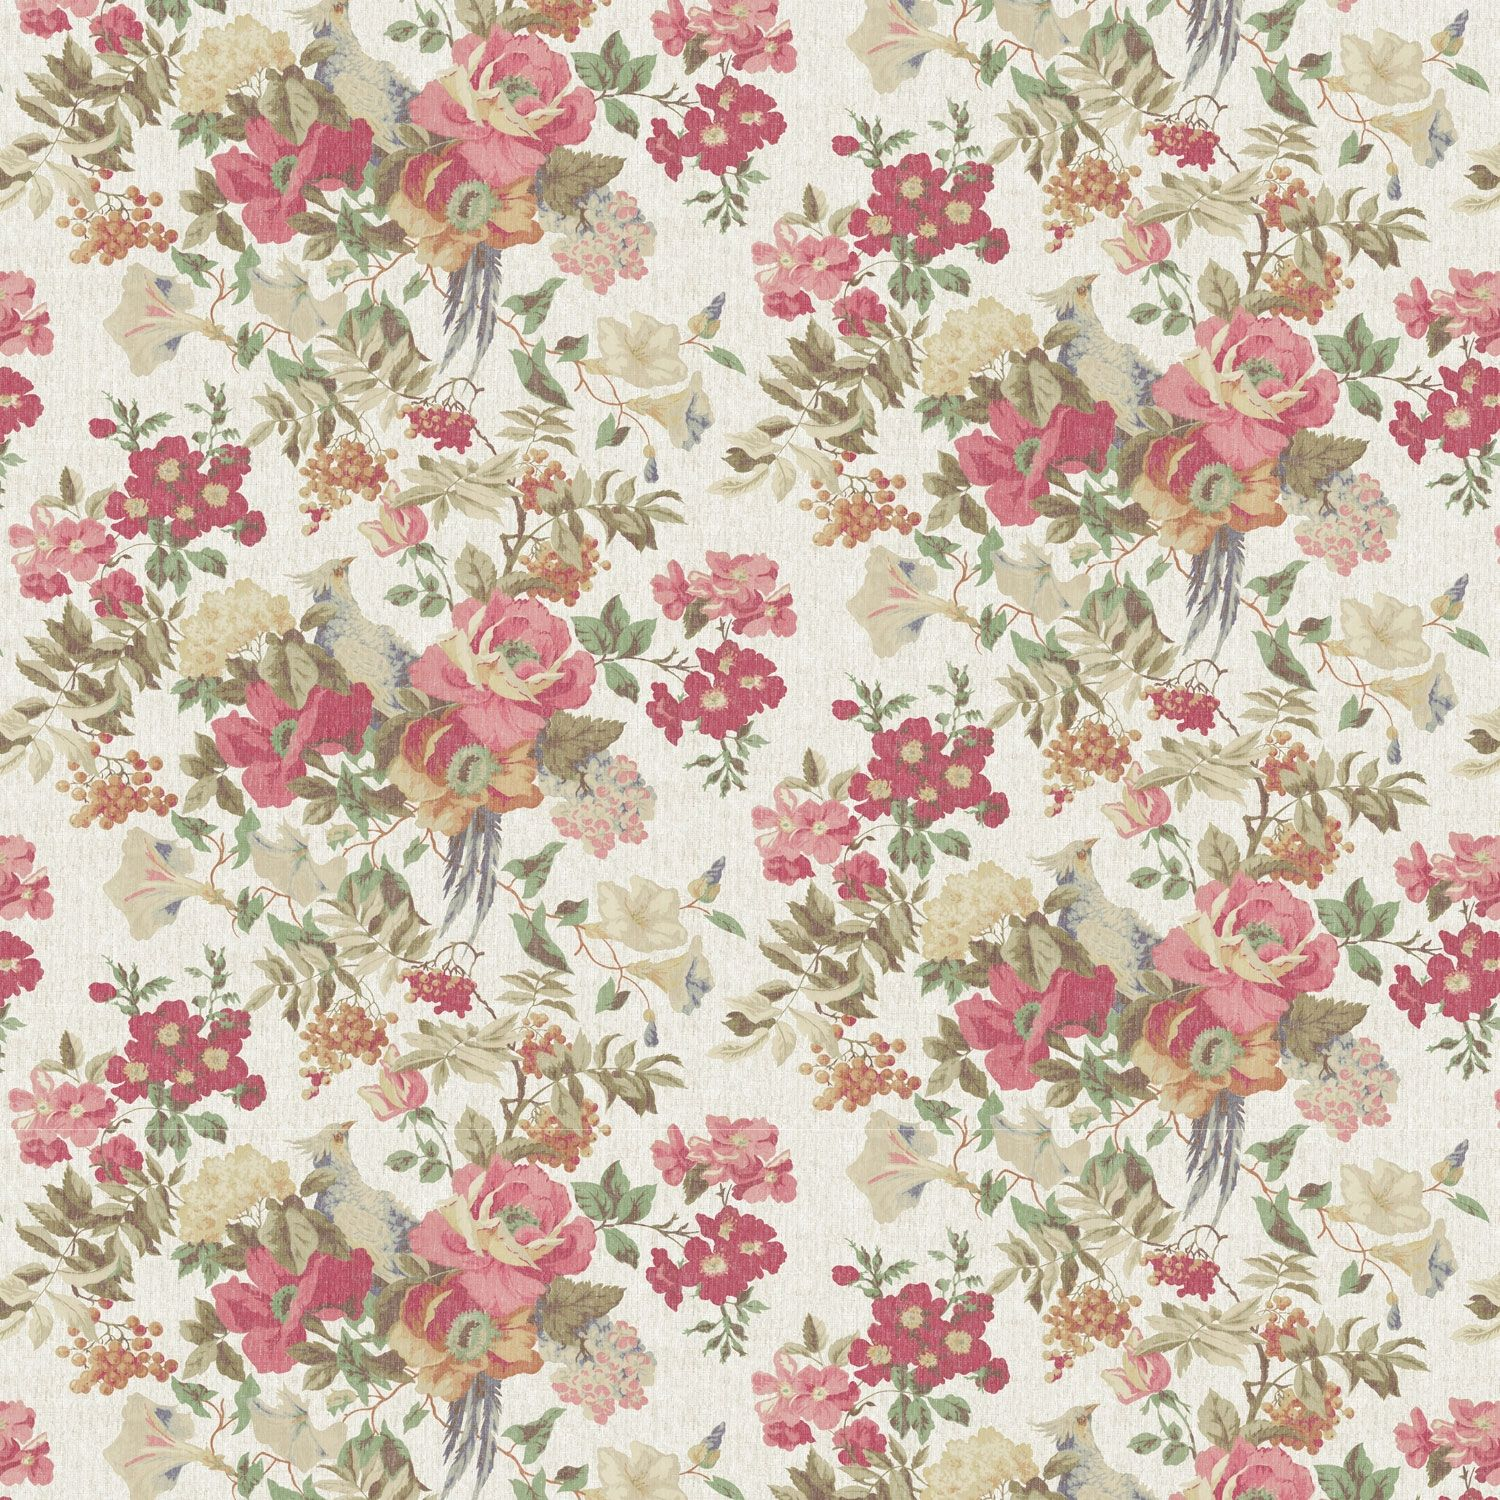 Vintage Floral Wallpaper Hd For Pc Fondo De Pantalla De Flores